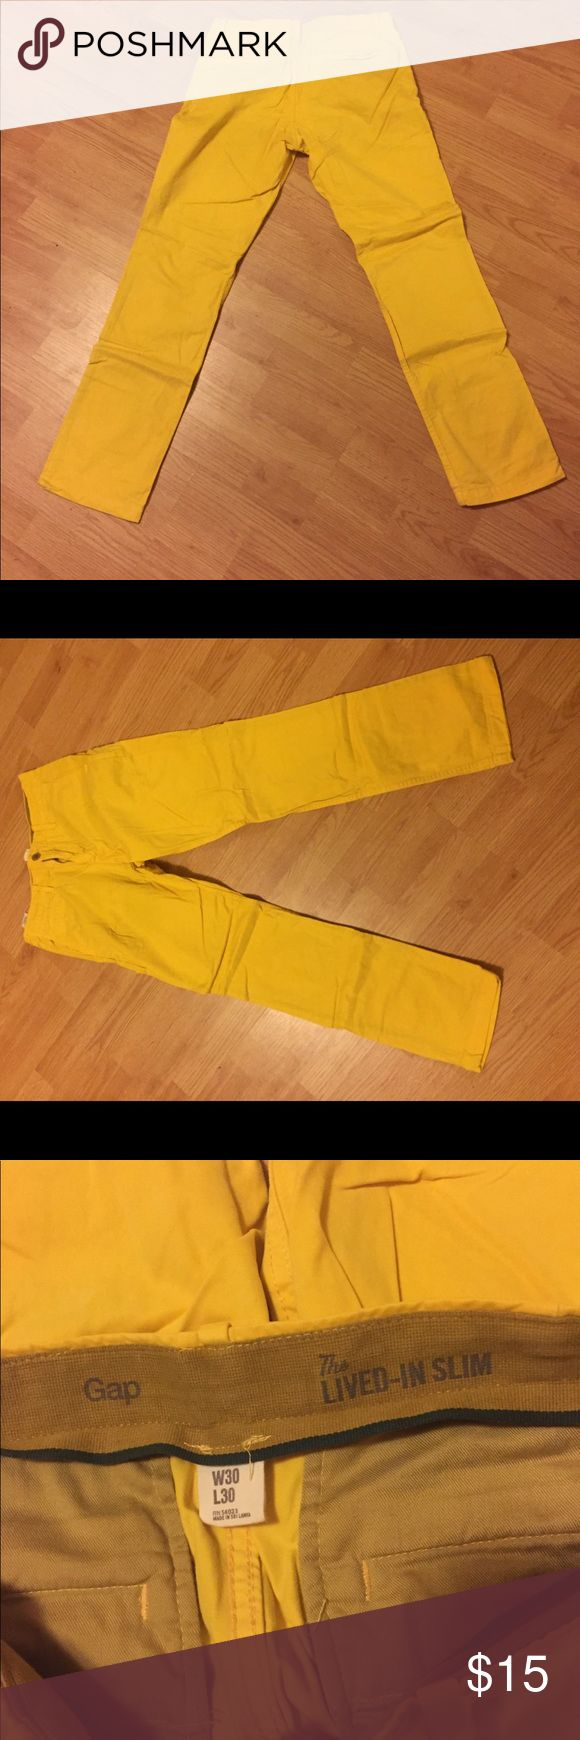 GAP Lived in slim fit Khakis Gap lived in slim fit Khakis. Only worn once. Add some color to your wardrobe and some color to your being. In great condition. Size 30/30 GAP Pants Chinos & Khakis